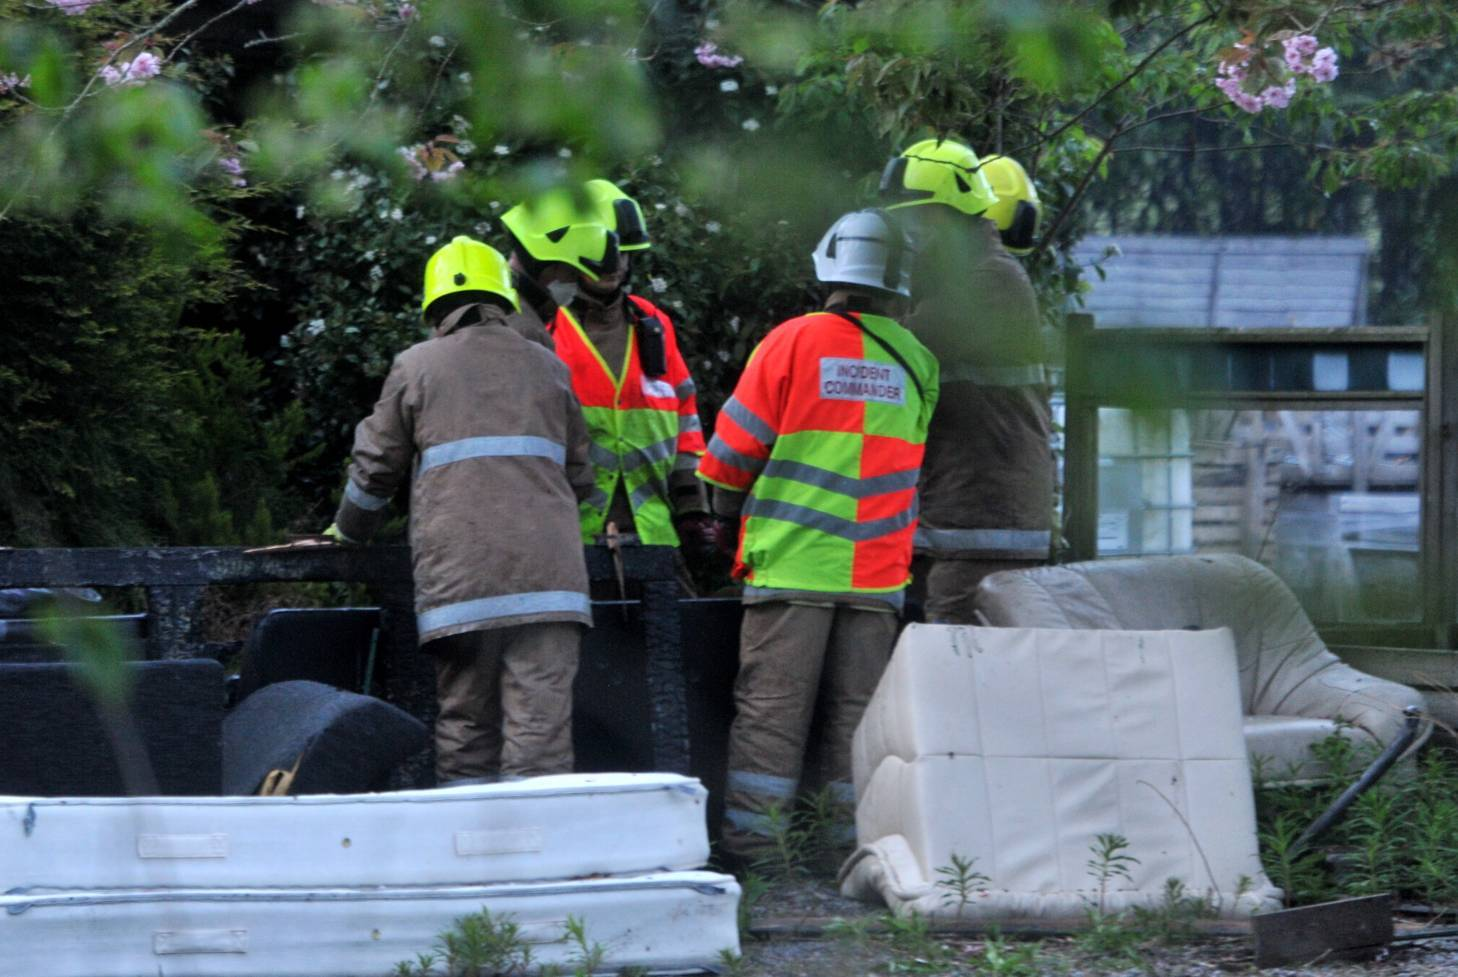 Firefighters at the scene of the blaze last night. Pictures by Heather Fowlie.